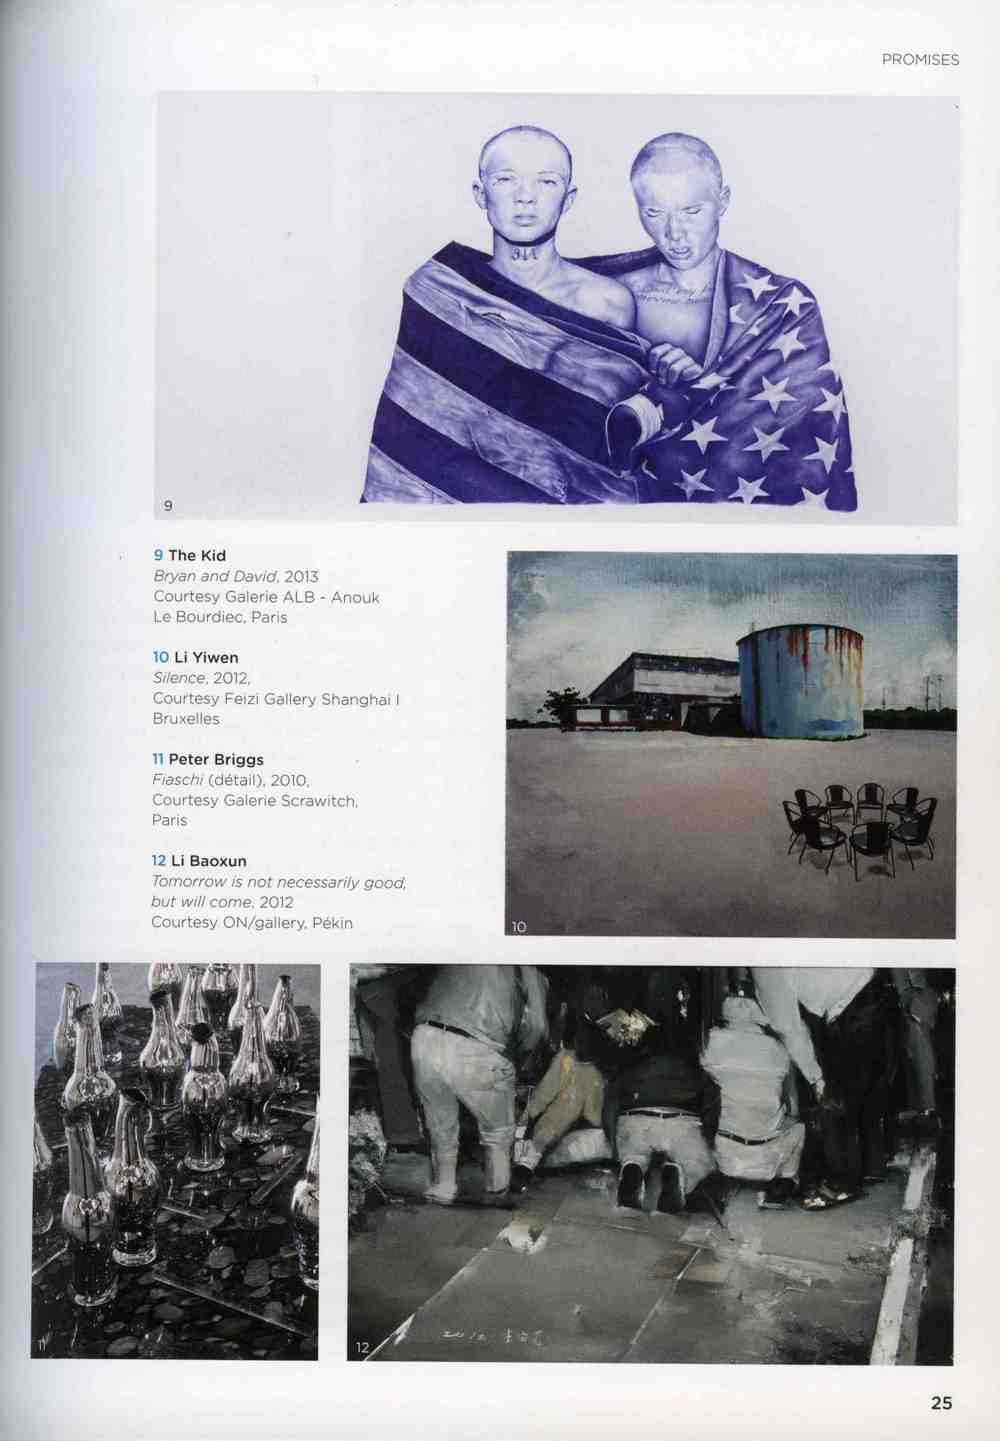 THE KID in ART PARIS 2014 Exhibition Catalogue Worldwide March 2014 page 25.jpg